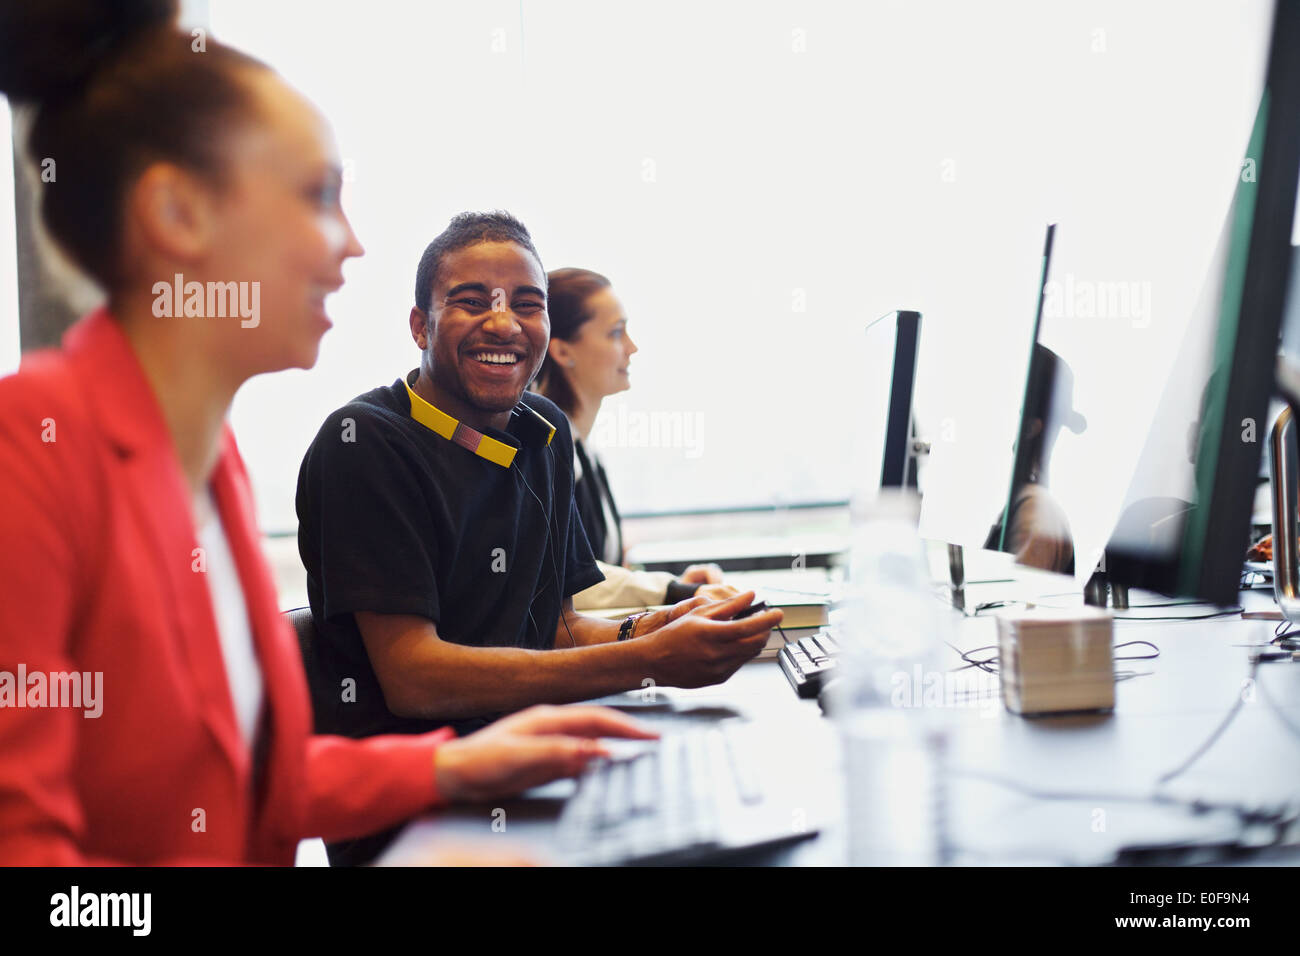 Young afro american man looking at camera smiling while working on computer in modern classroom. Young students studying. - Stock Image